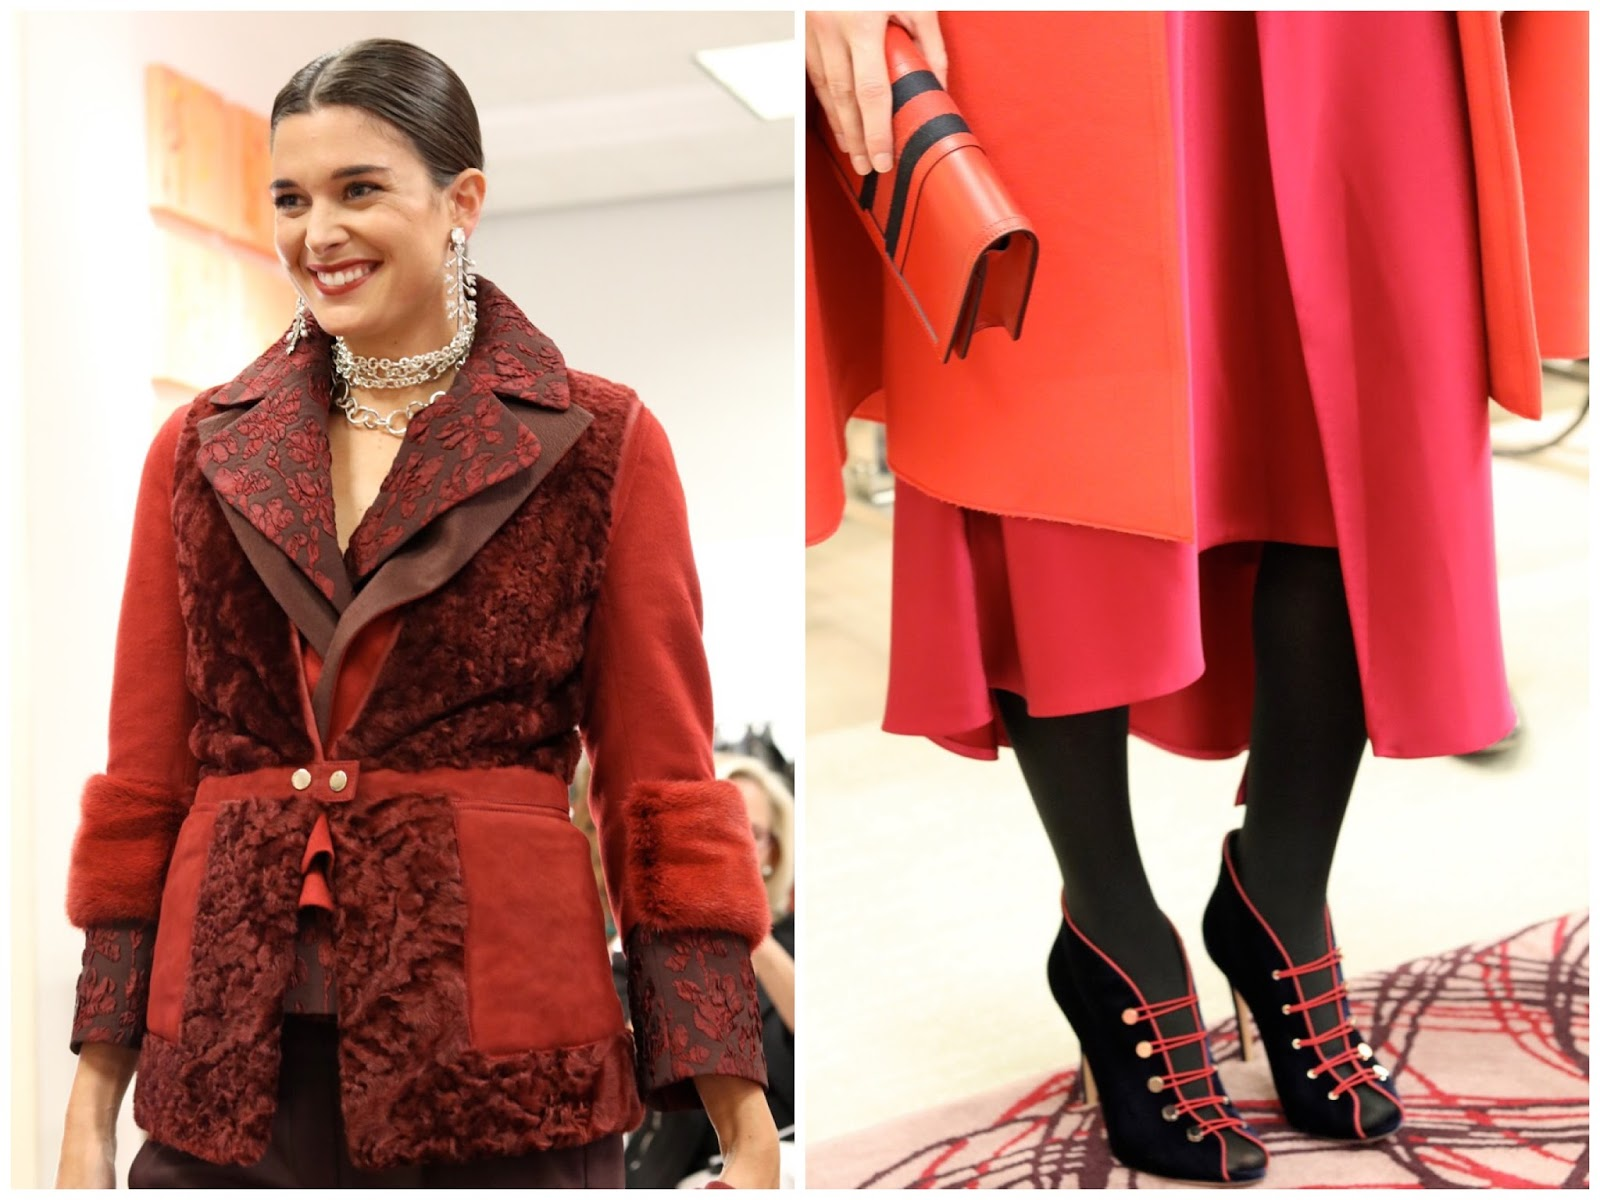 Neiman Marcus Fall 2016 Trend Report, fall 2016 berry tones, berry shades trends, deep reds for fall